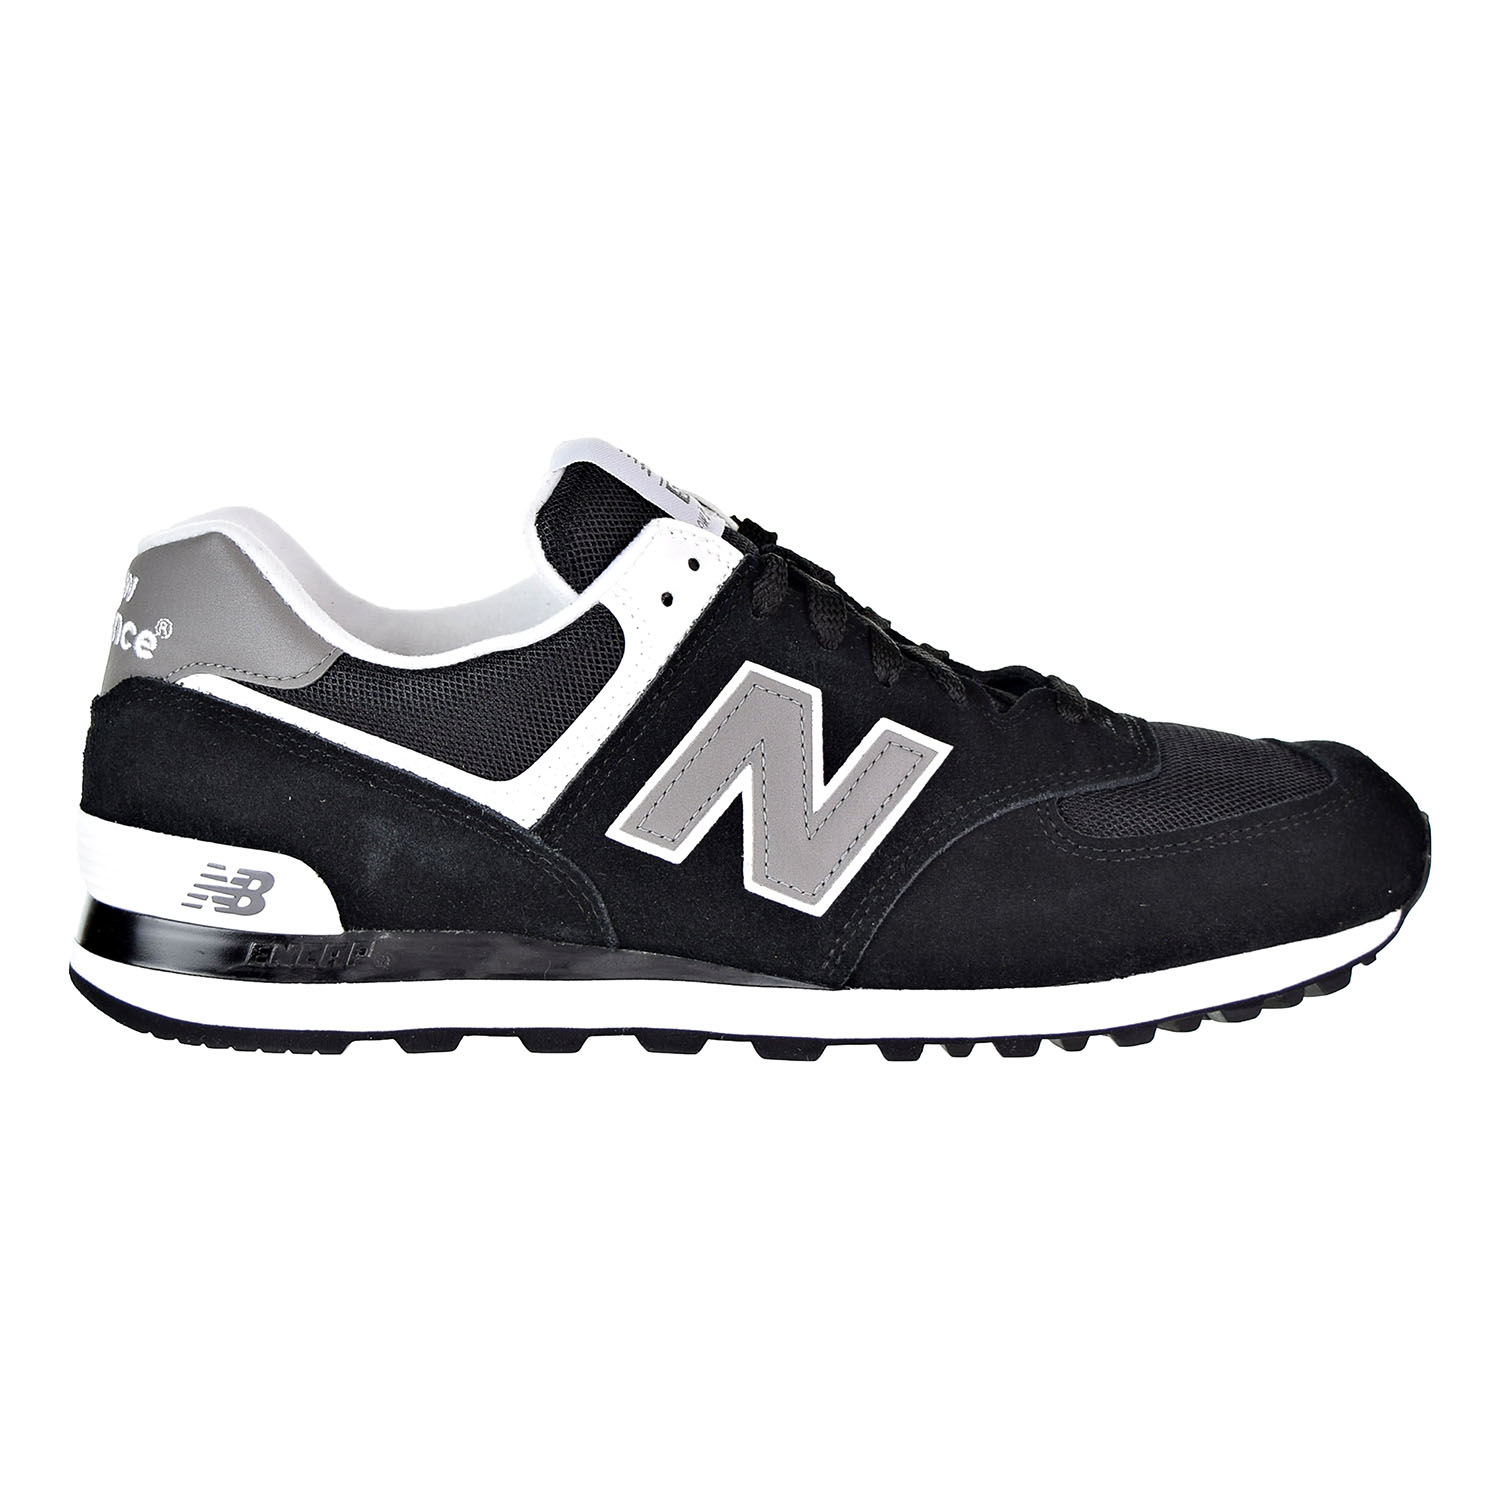 Details about New Balance 574 Men's Shoes Black Grey White M574 SKW